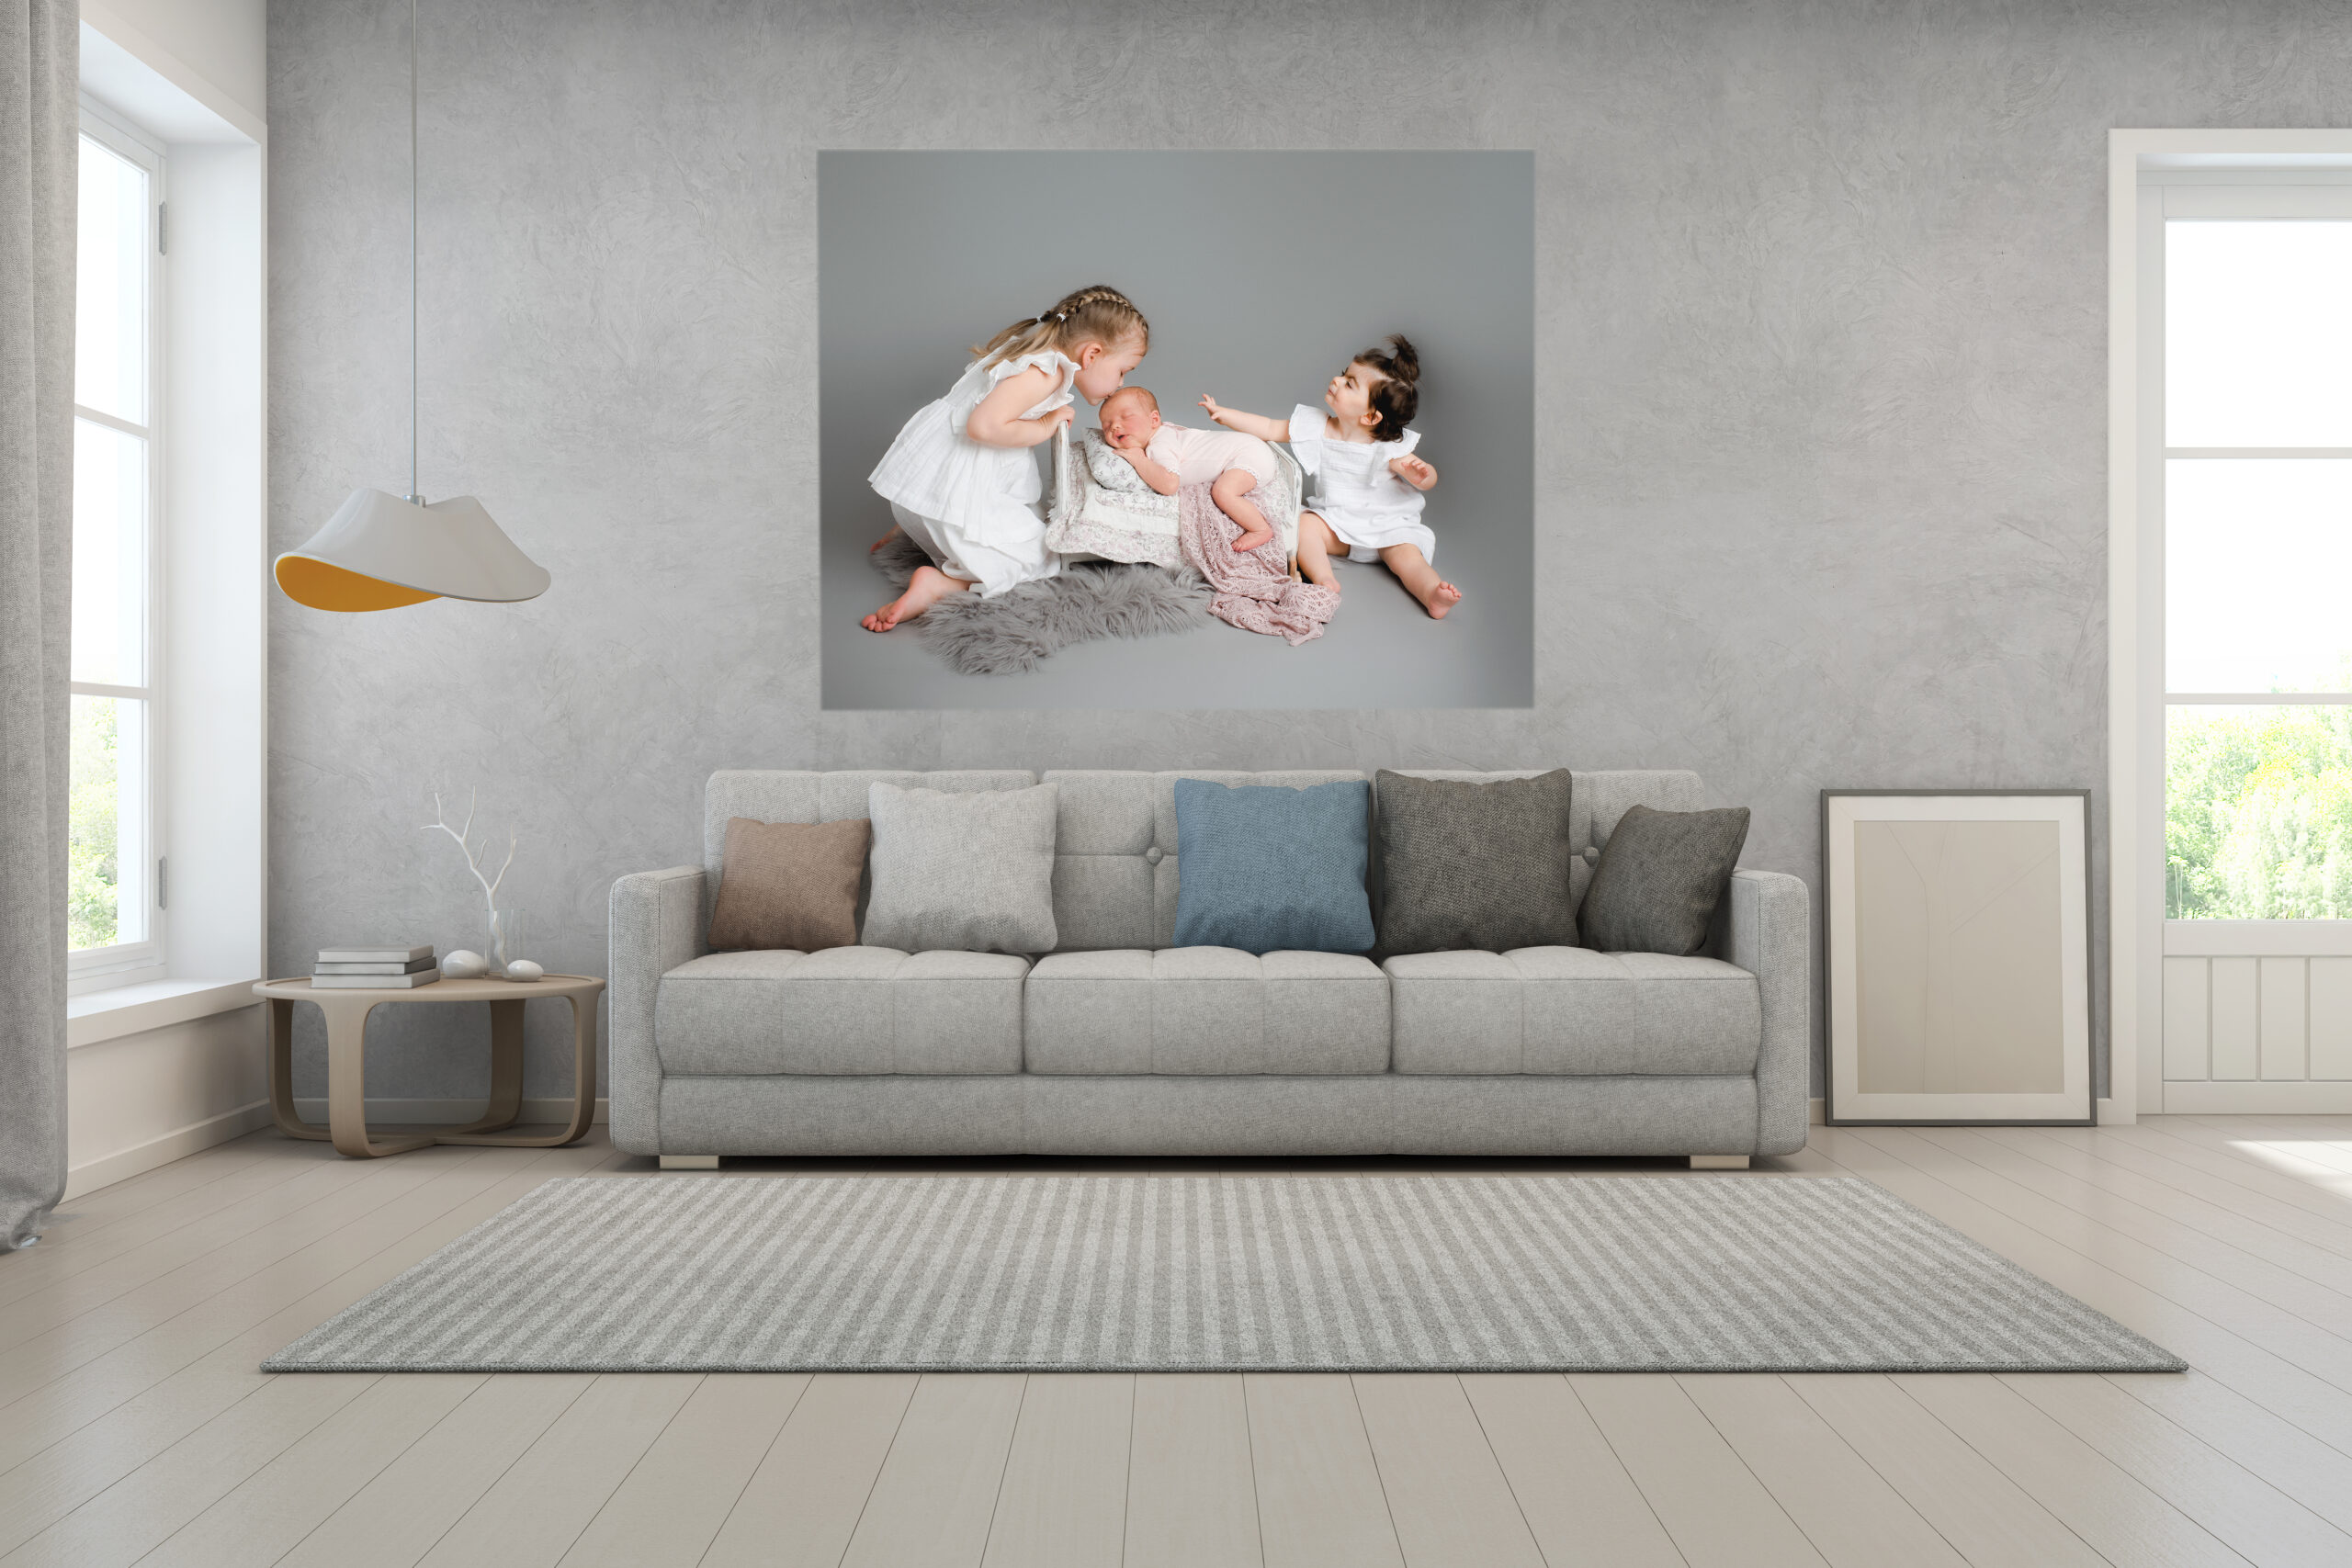 Three beautiful sisters on a photo shot at rachael phillips photography in mansfield nottingham, the newborn baby is in a bed and her sisters are looking at her, it has a grey background